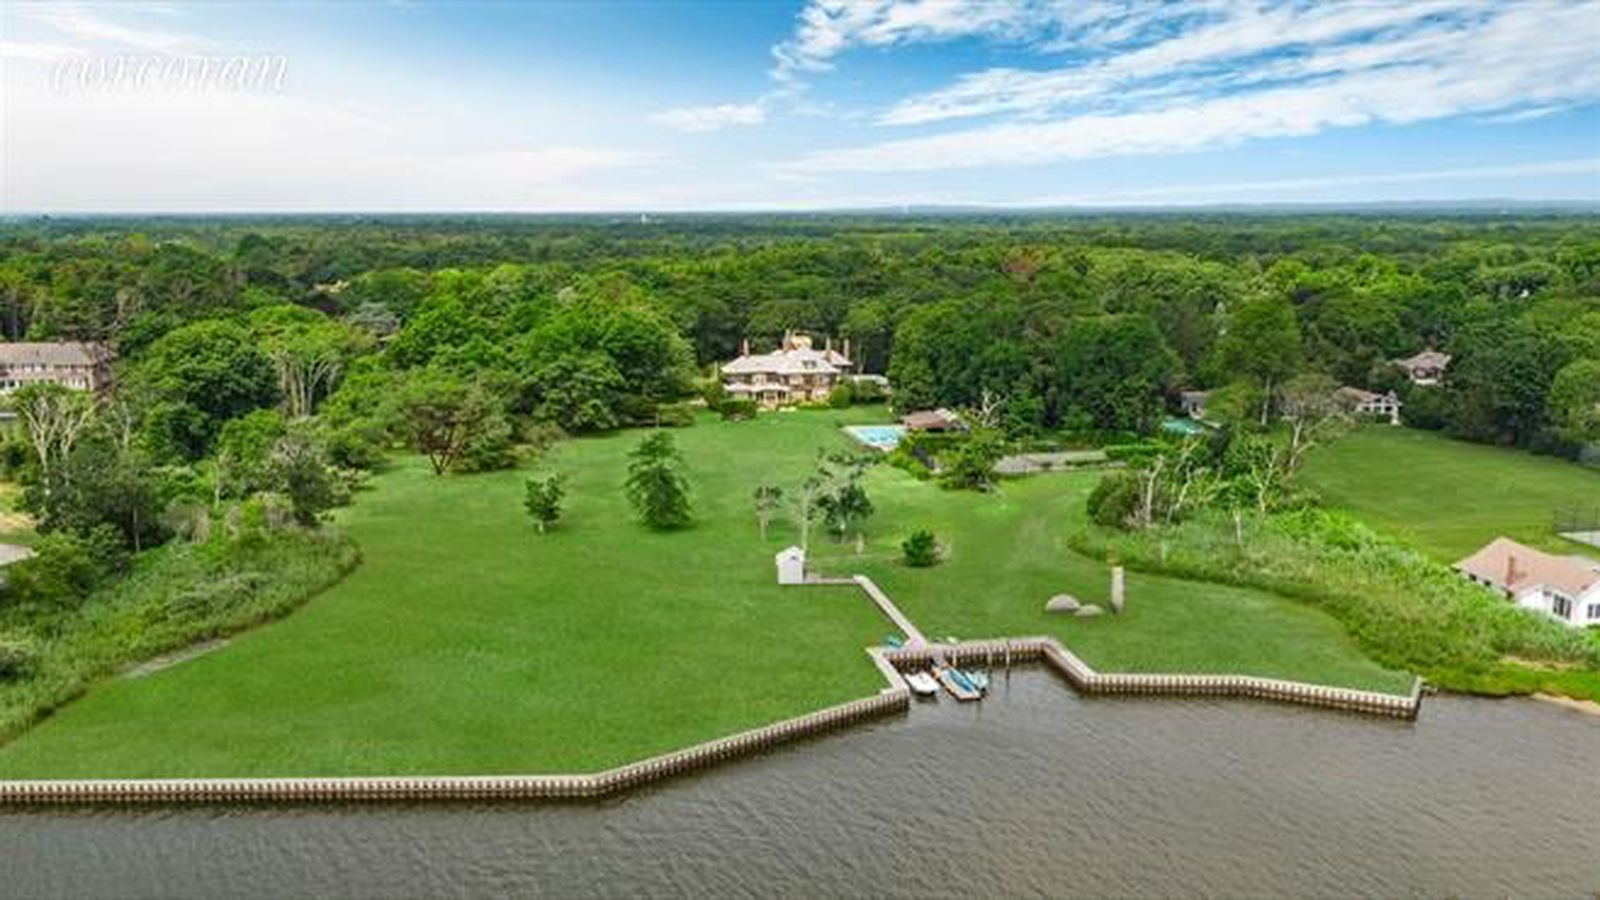 Venture capitalist s hamptons home with private art museum for Hamptons beach house for sale